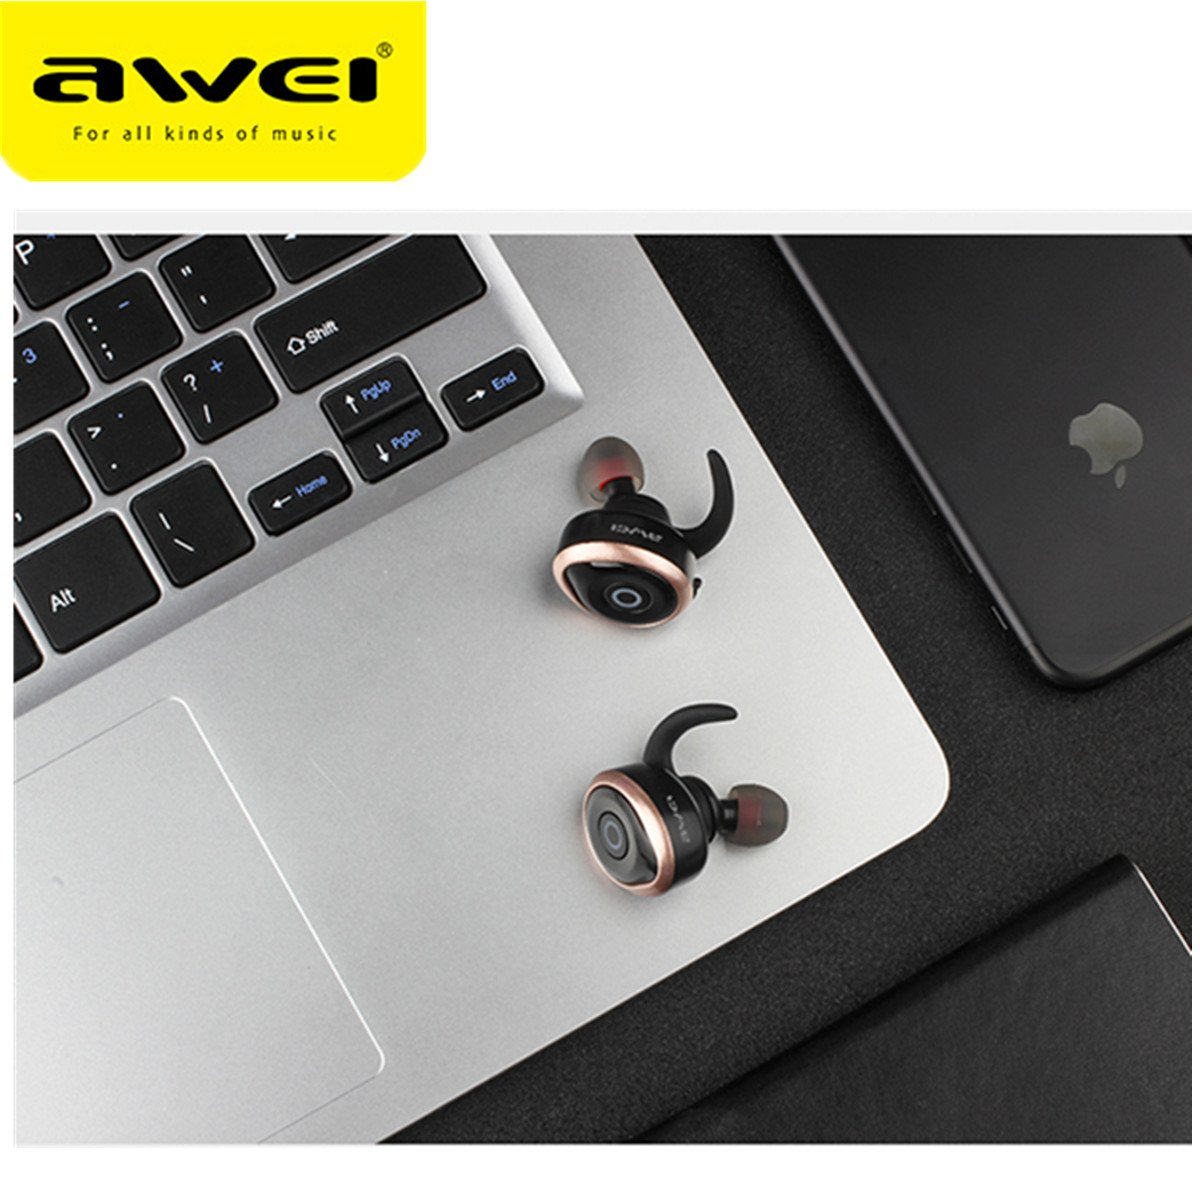 Awei T1 Single/Pairs Ture Wireless Get Rid Of Wire Binding earbuds, One Button Operation Bluetooth V4.2 Waterproof IPX4 Sport Headphones for Running Gym Exercise Hands-free Calling for iphone7(Gold) by AWEI (Image #6)